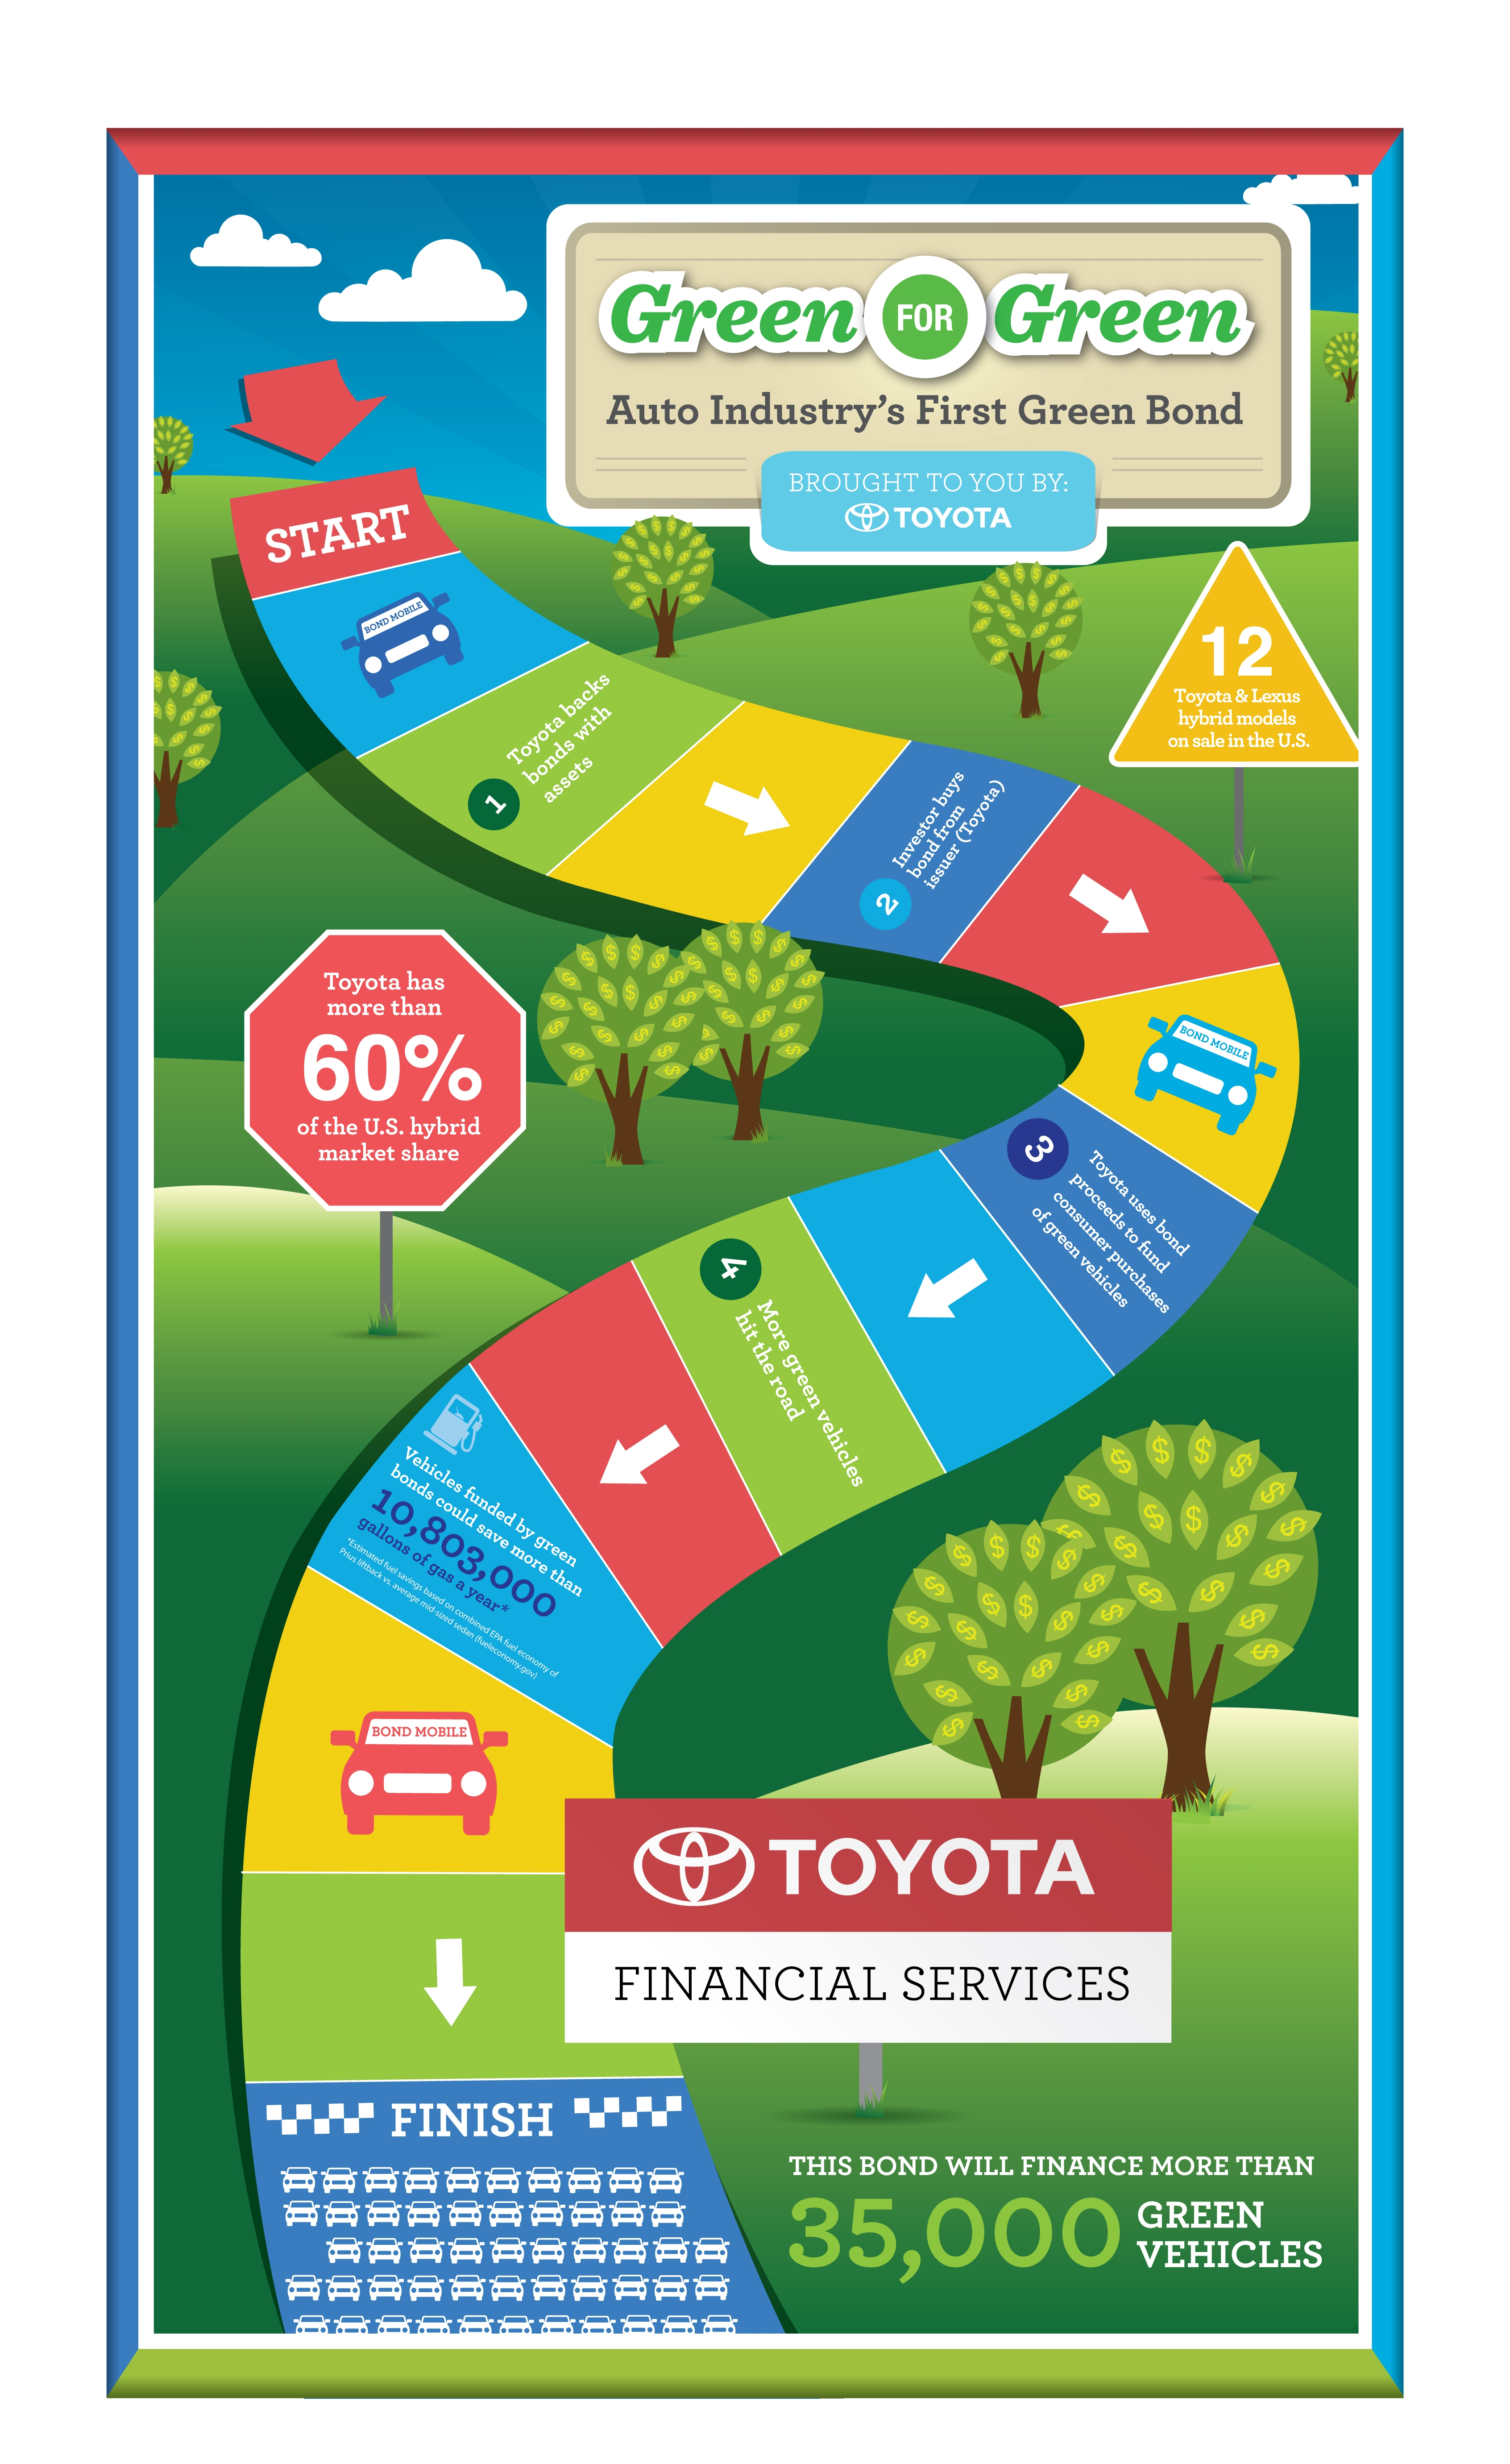 Toyota financial services tfs issues auto industry s first ever asset backed green bond